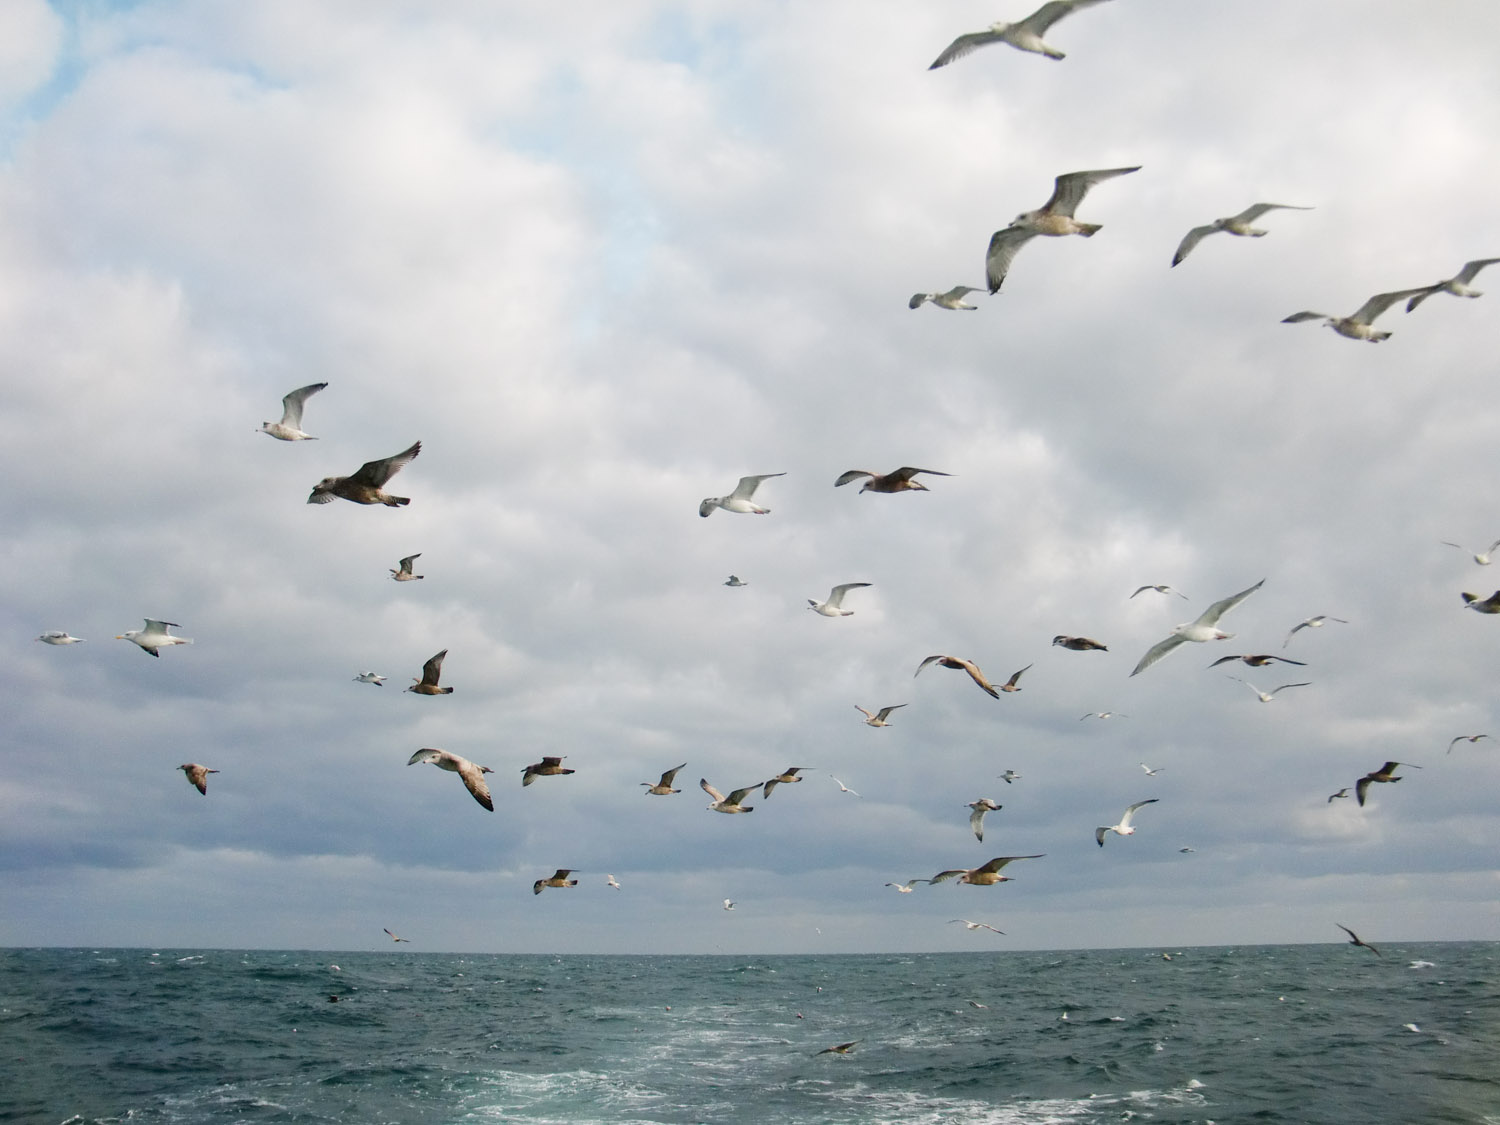 Part of the flock following the boat out in the Atlantic Ocean